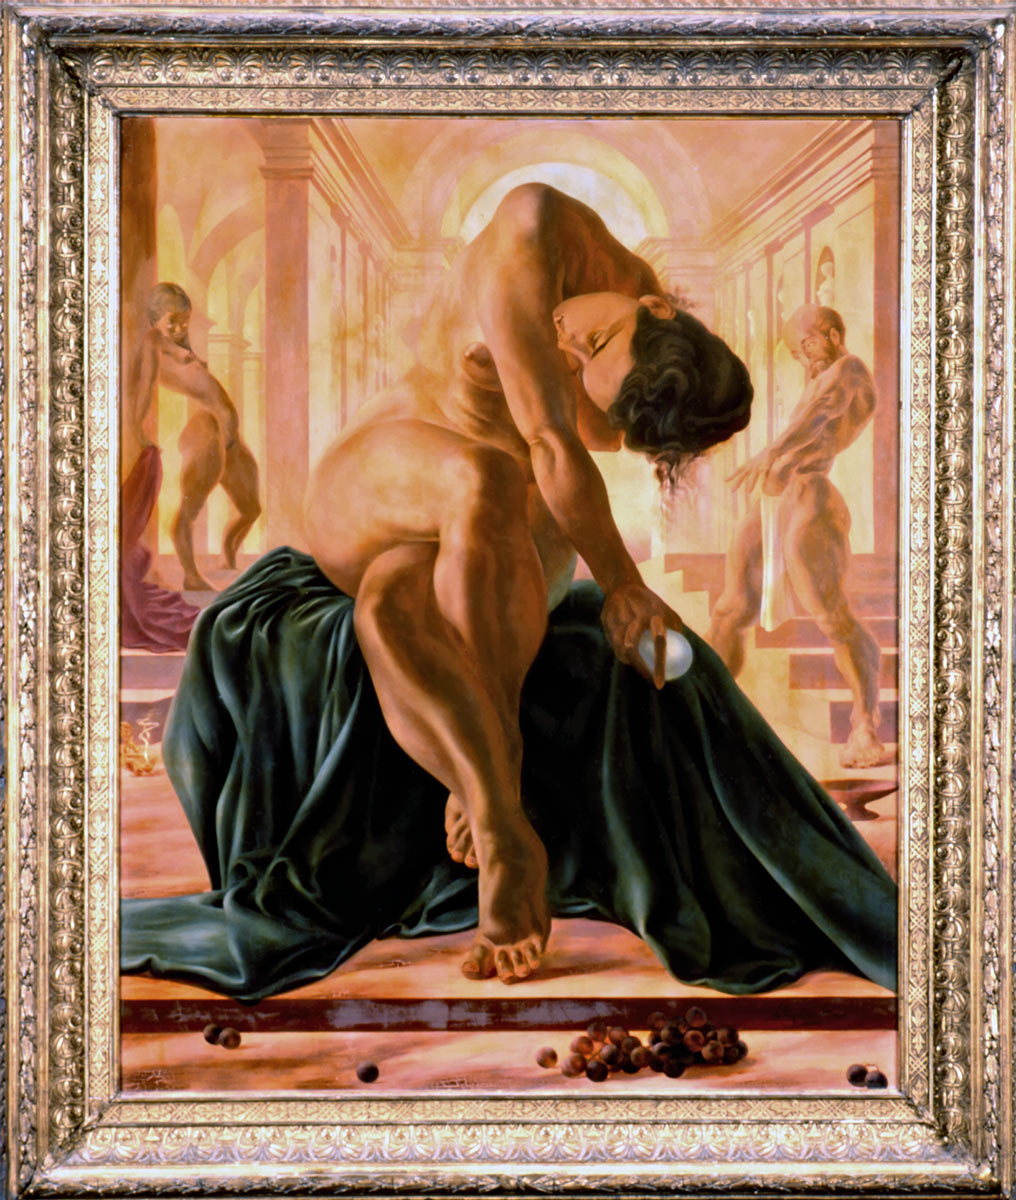 Crossed legs oil painting by Artist Anthony Brandt - Britain's modern Michaelangelo